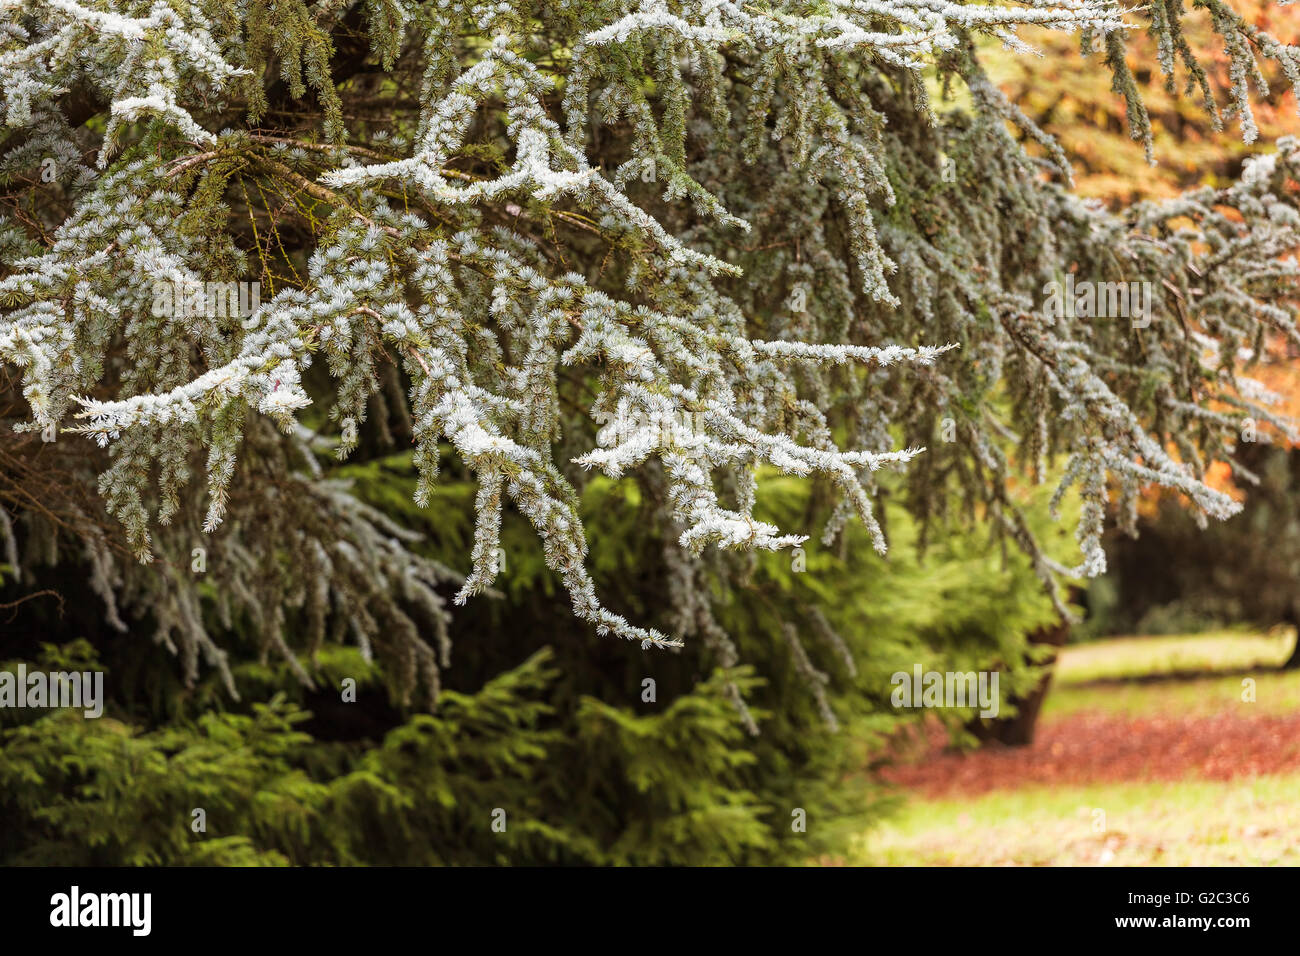 Closeup on conifer tree spikes in an autumn garden - Stock Image